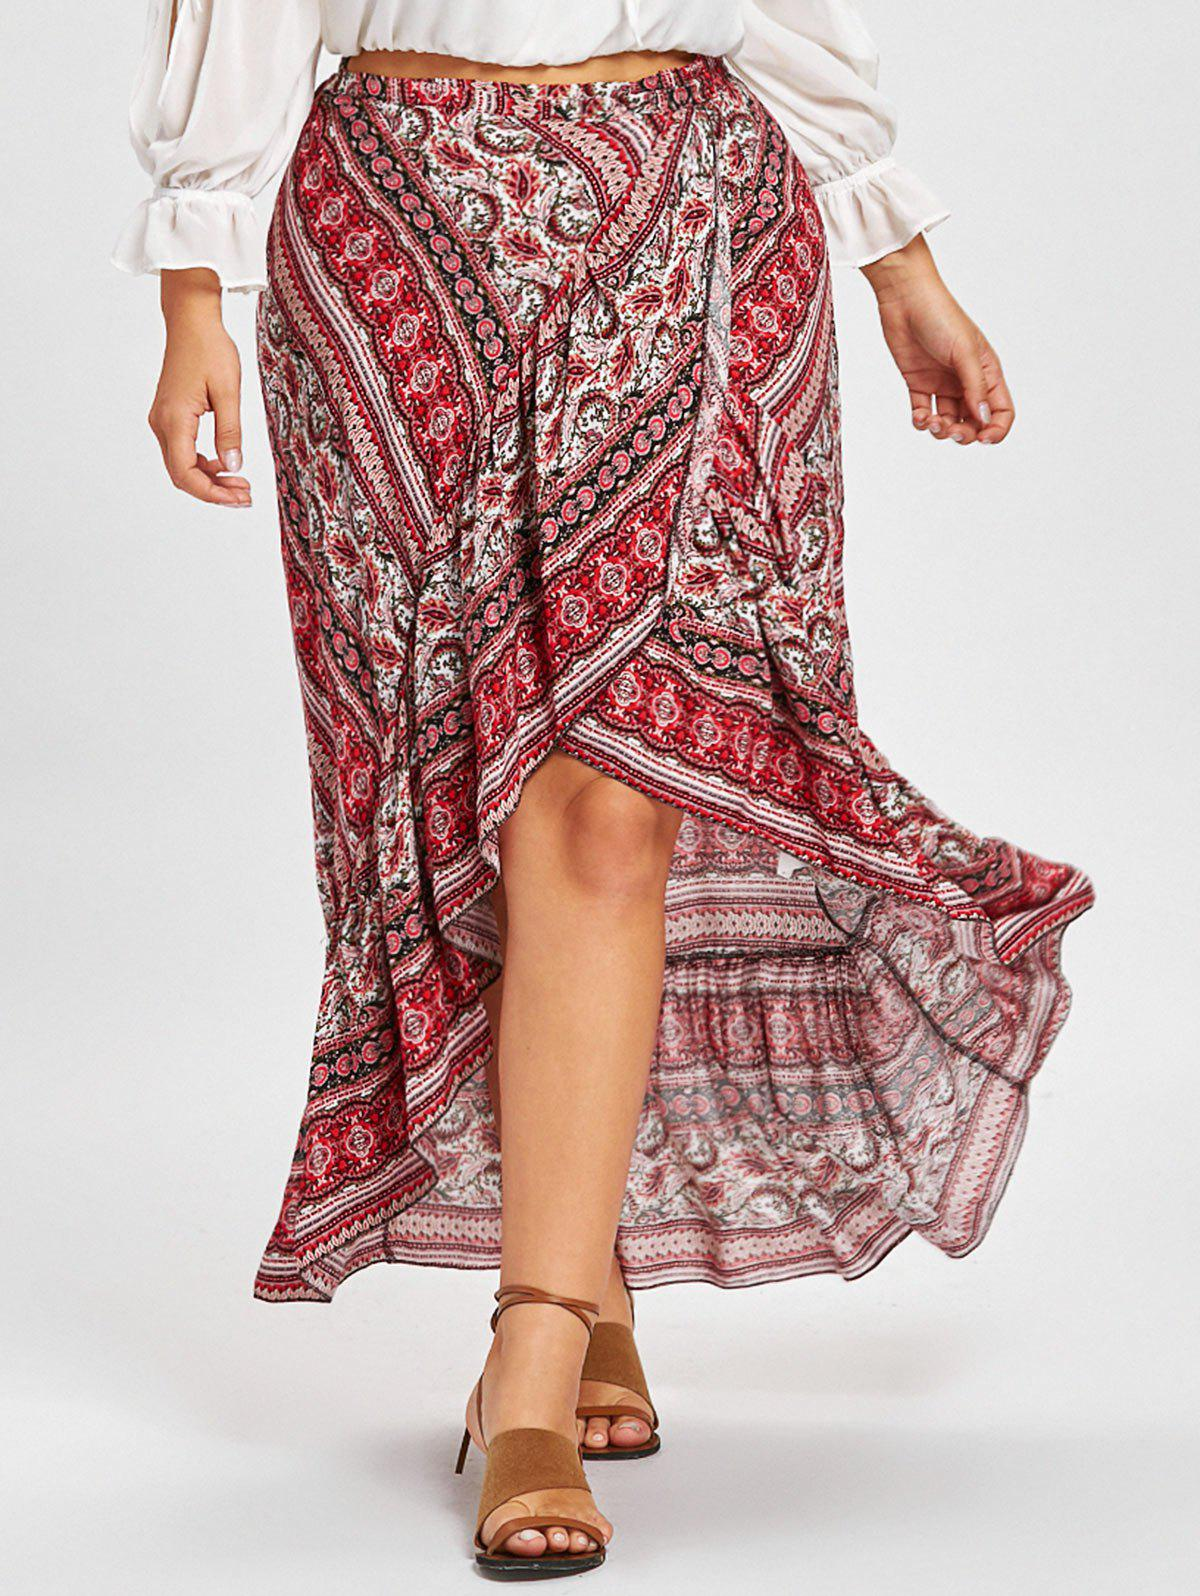 Bohemian Ruffle Plus Size Wrap Skirt - RED ONE SIZE